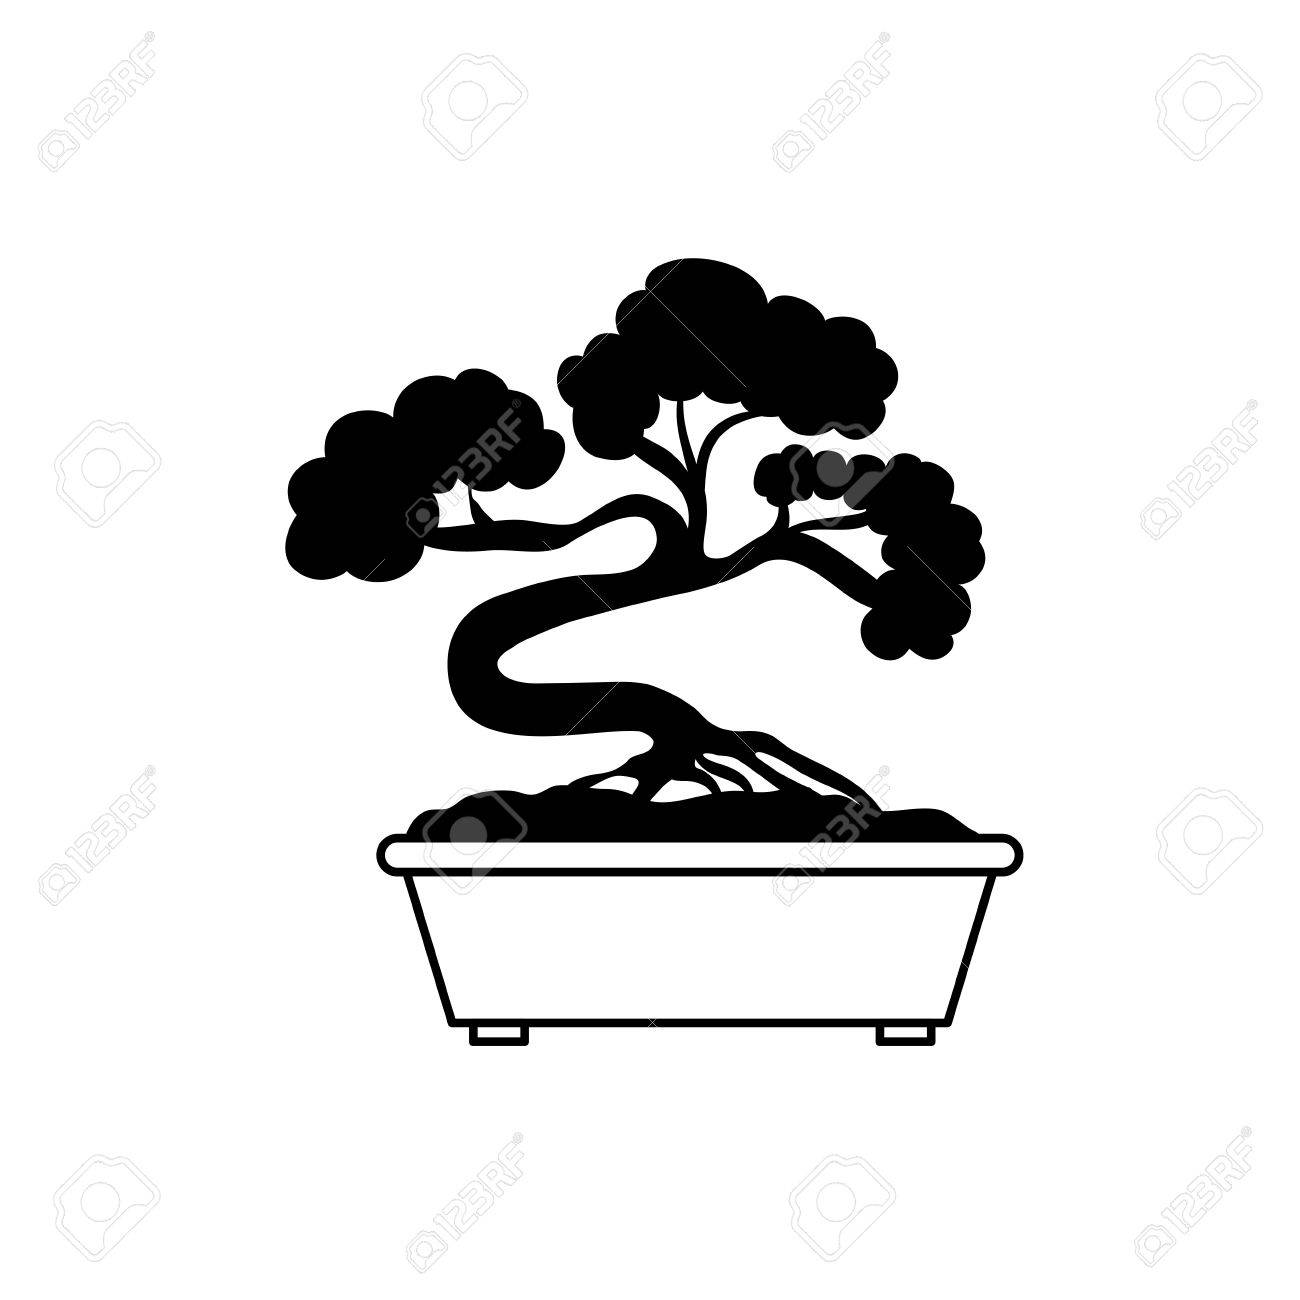 Bonsai Japanese Tree Icon Vector Illustration Graphic Design Royalty Free Cliparts Vectors And Stock Illustration Image 67167003